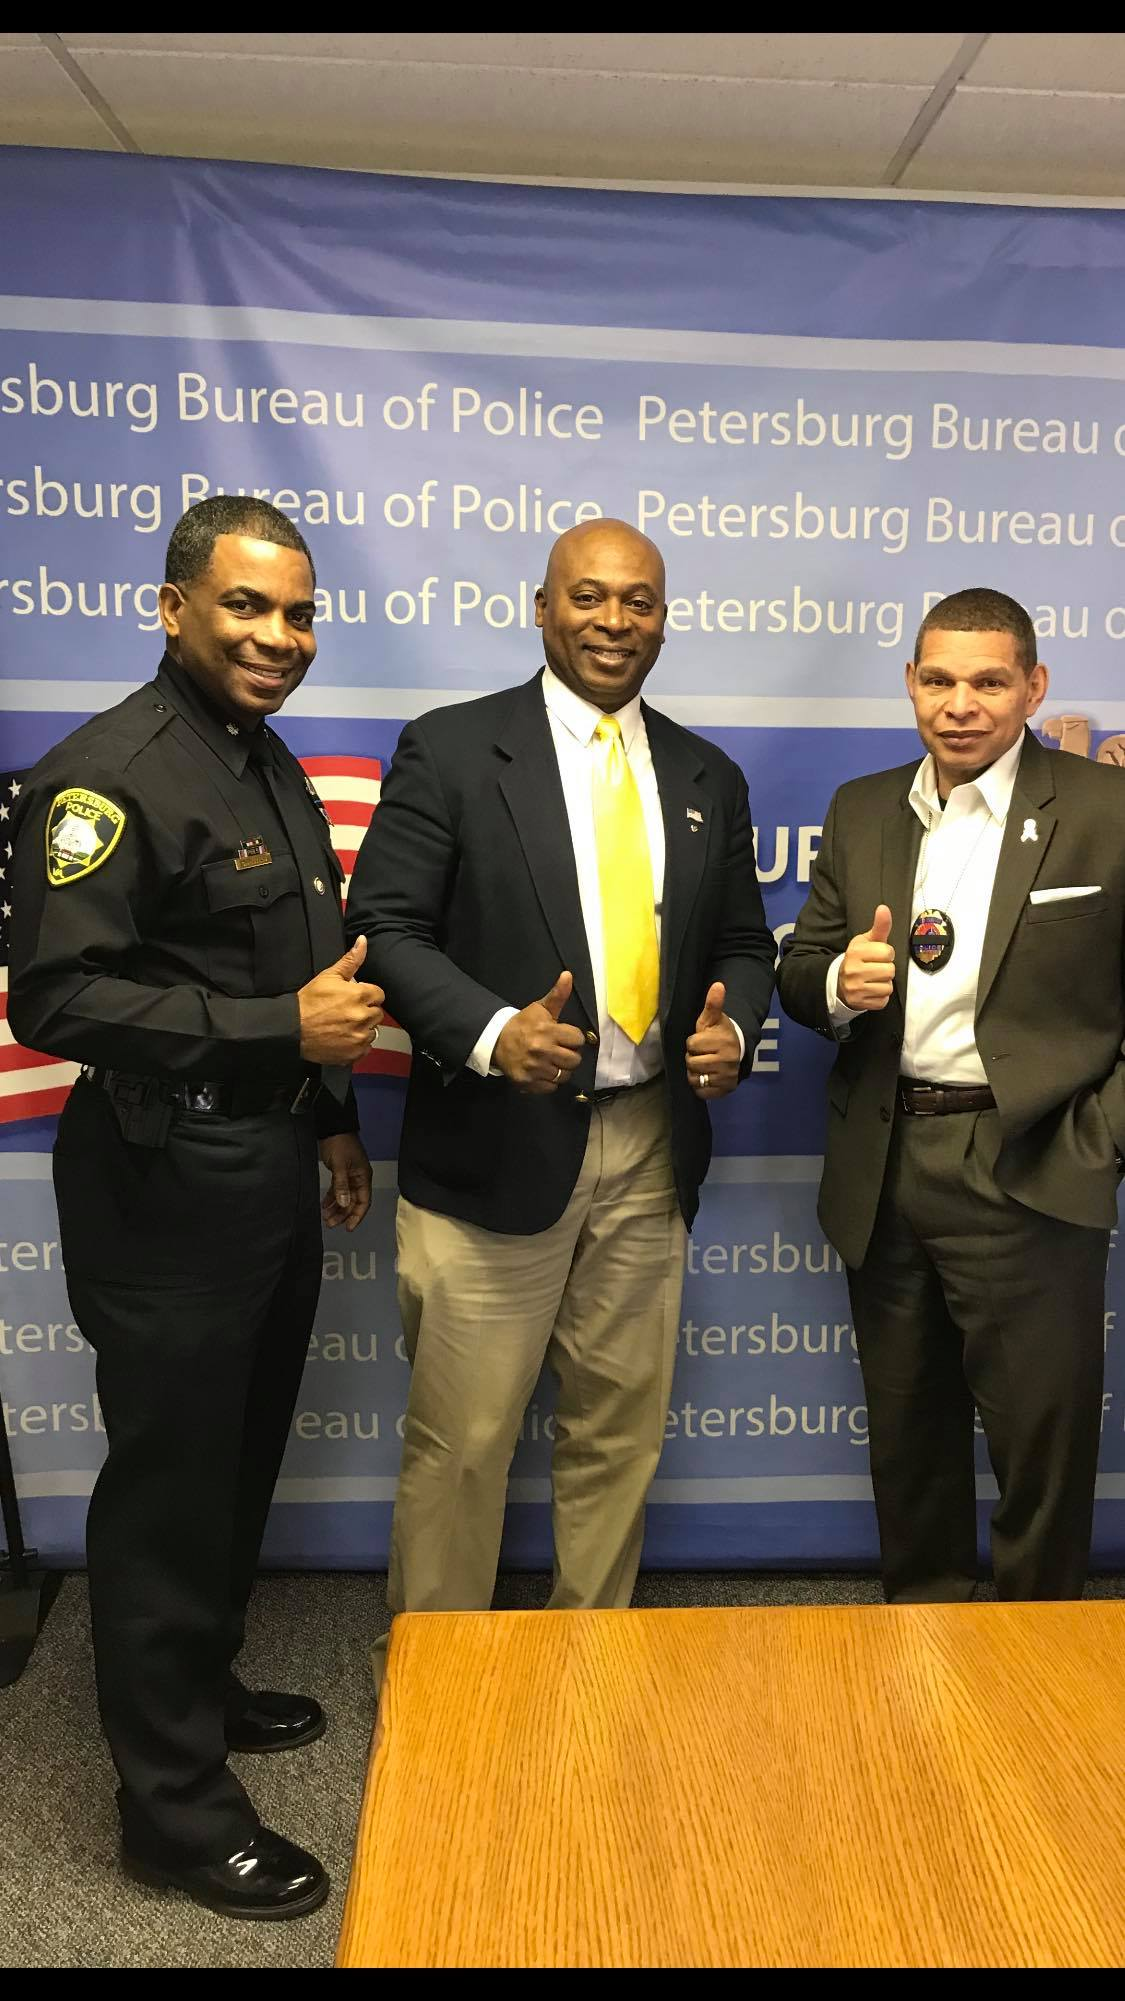 We discussed the strategies for Petersburg Va and how to get economic revitalization started and he also allowed me to pray for the police department and protection for all workers